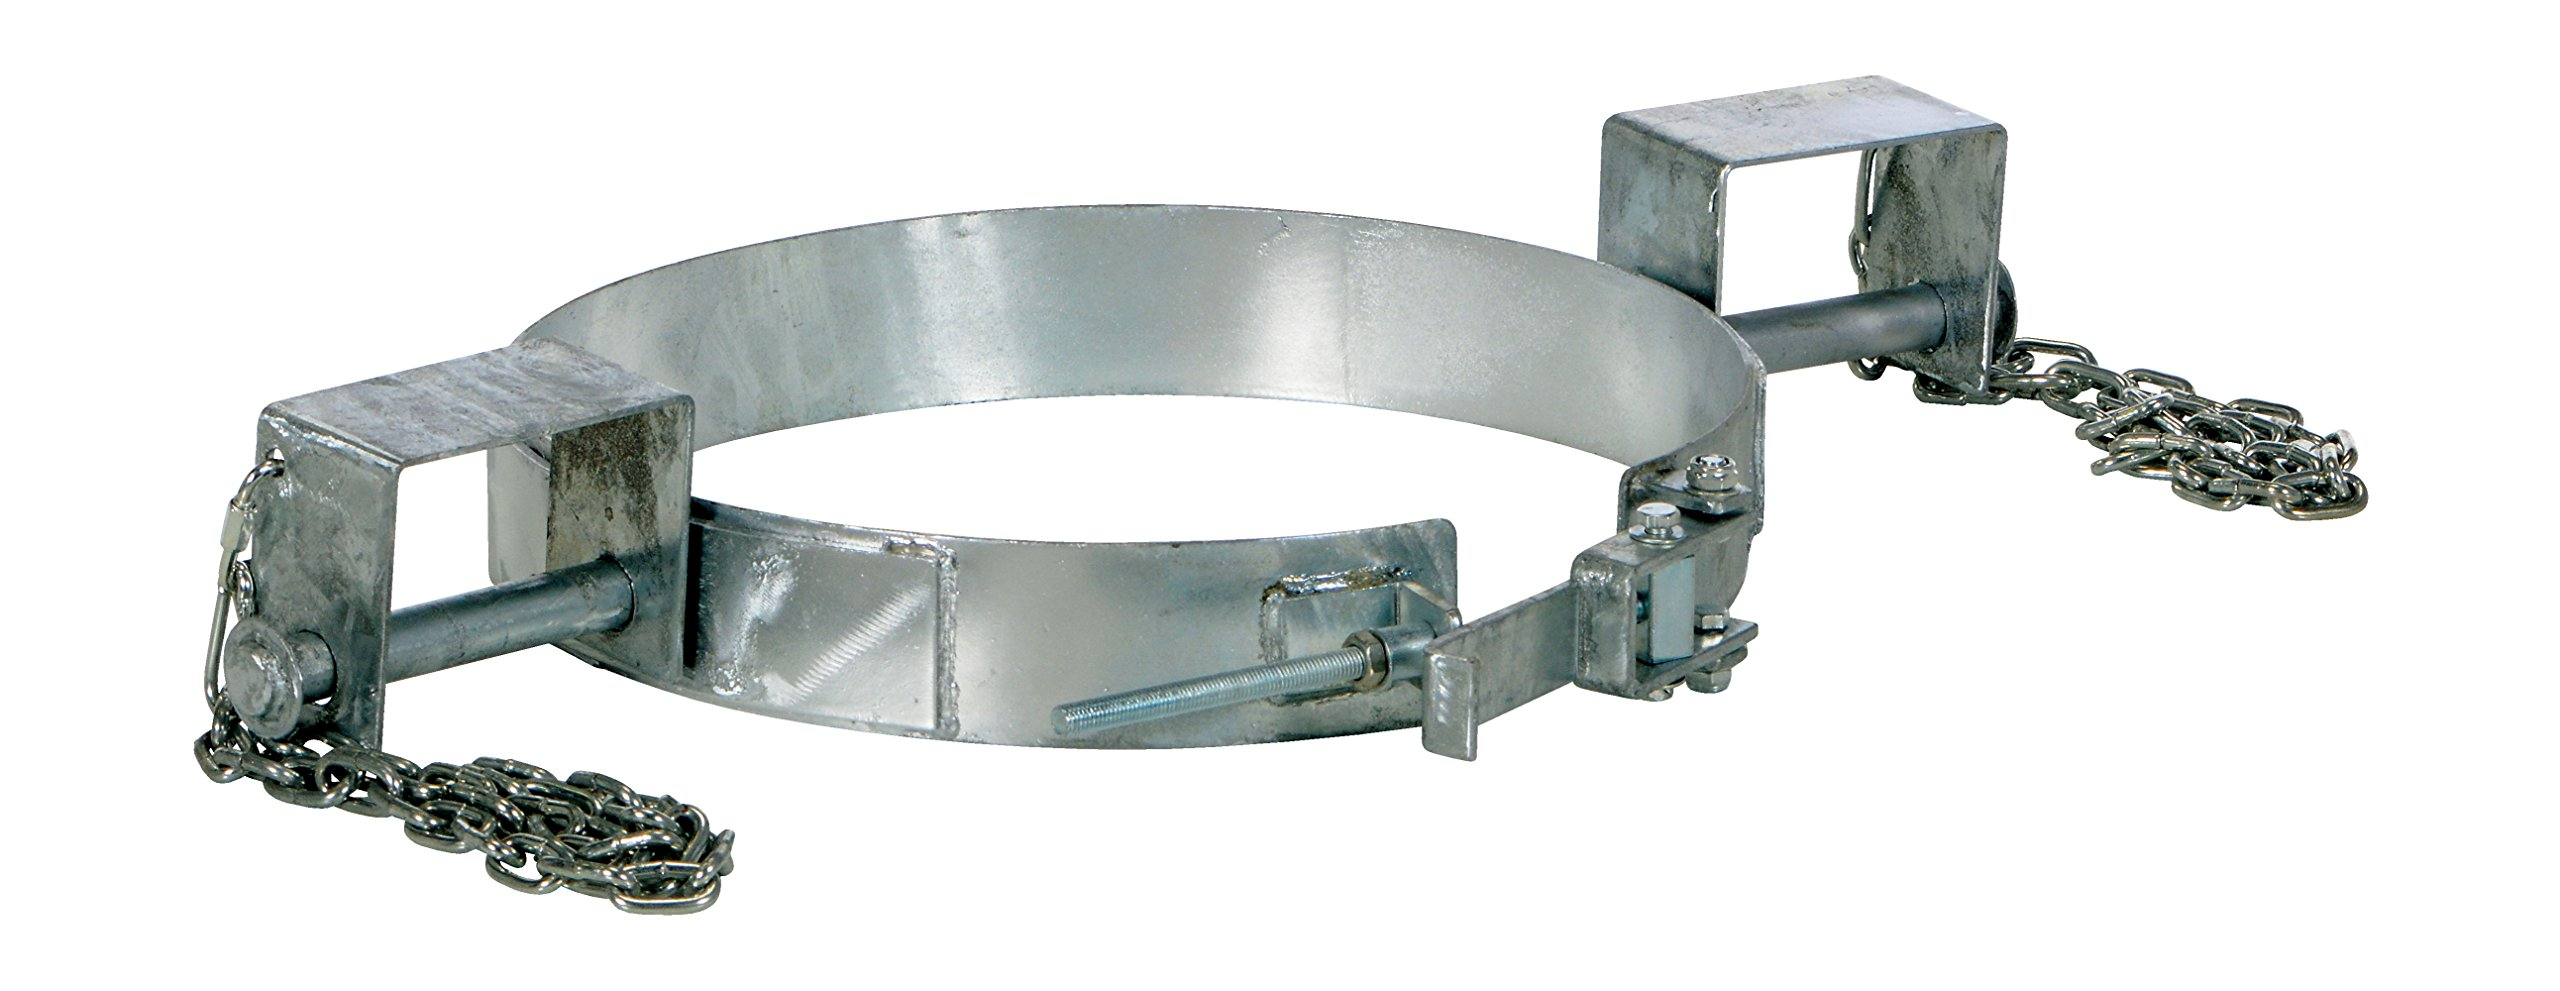 Vestil TDR-30-G Galvanized Tilting Drum Ring, 25.5'' Length, 30 gal